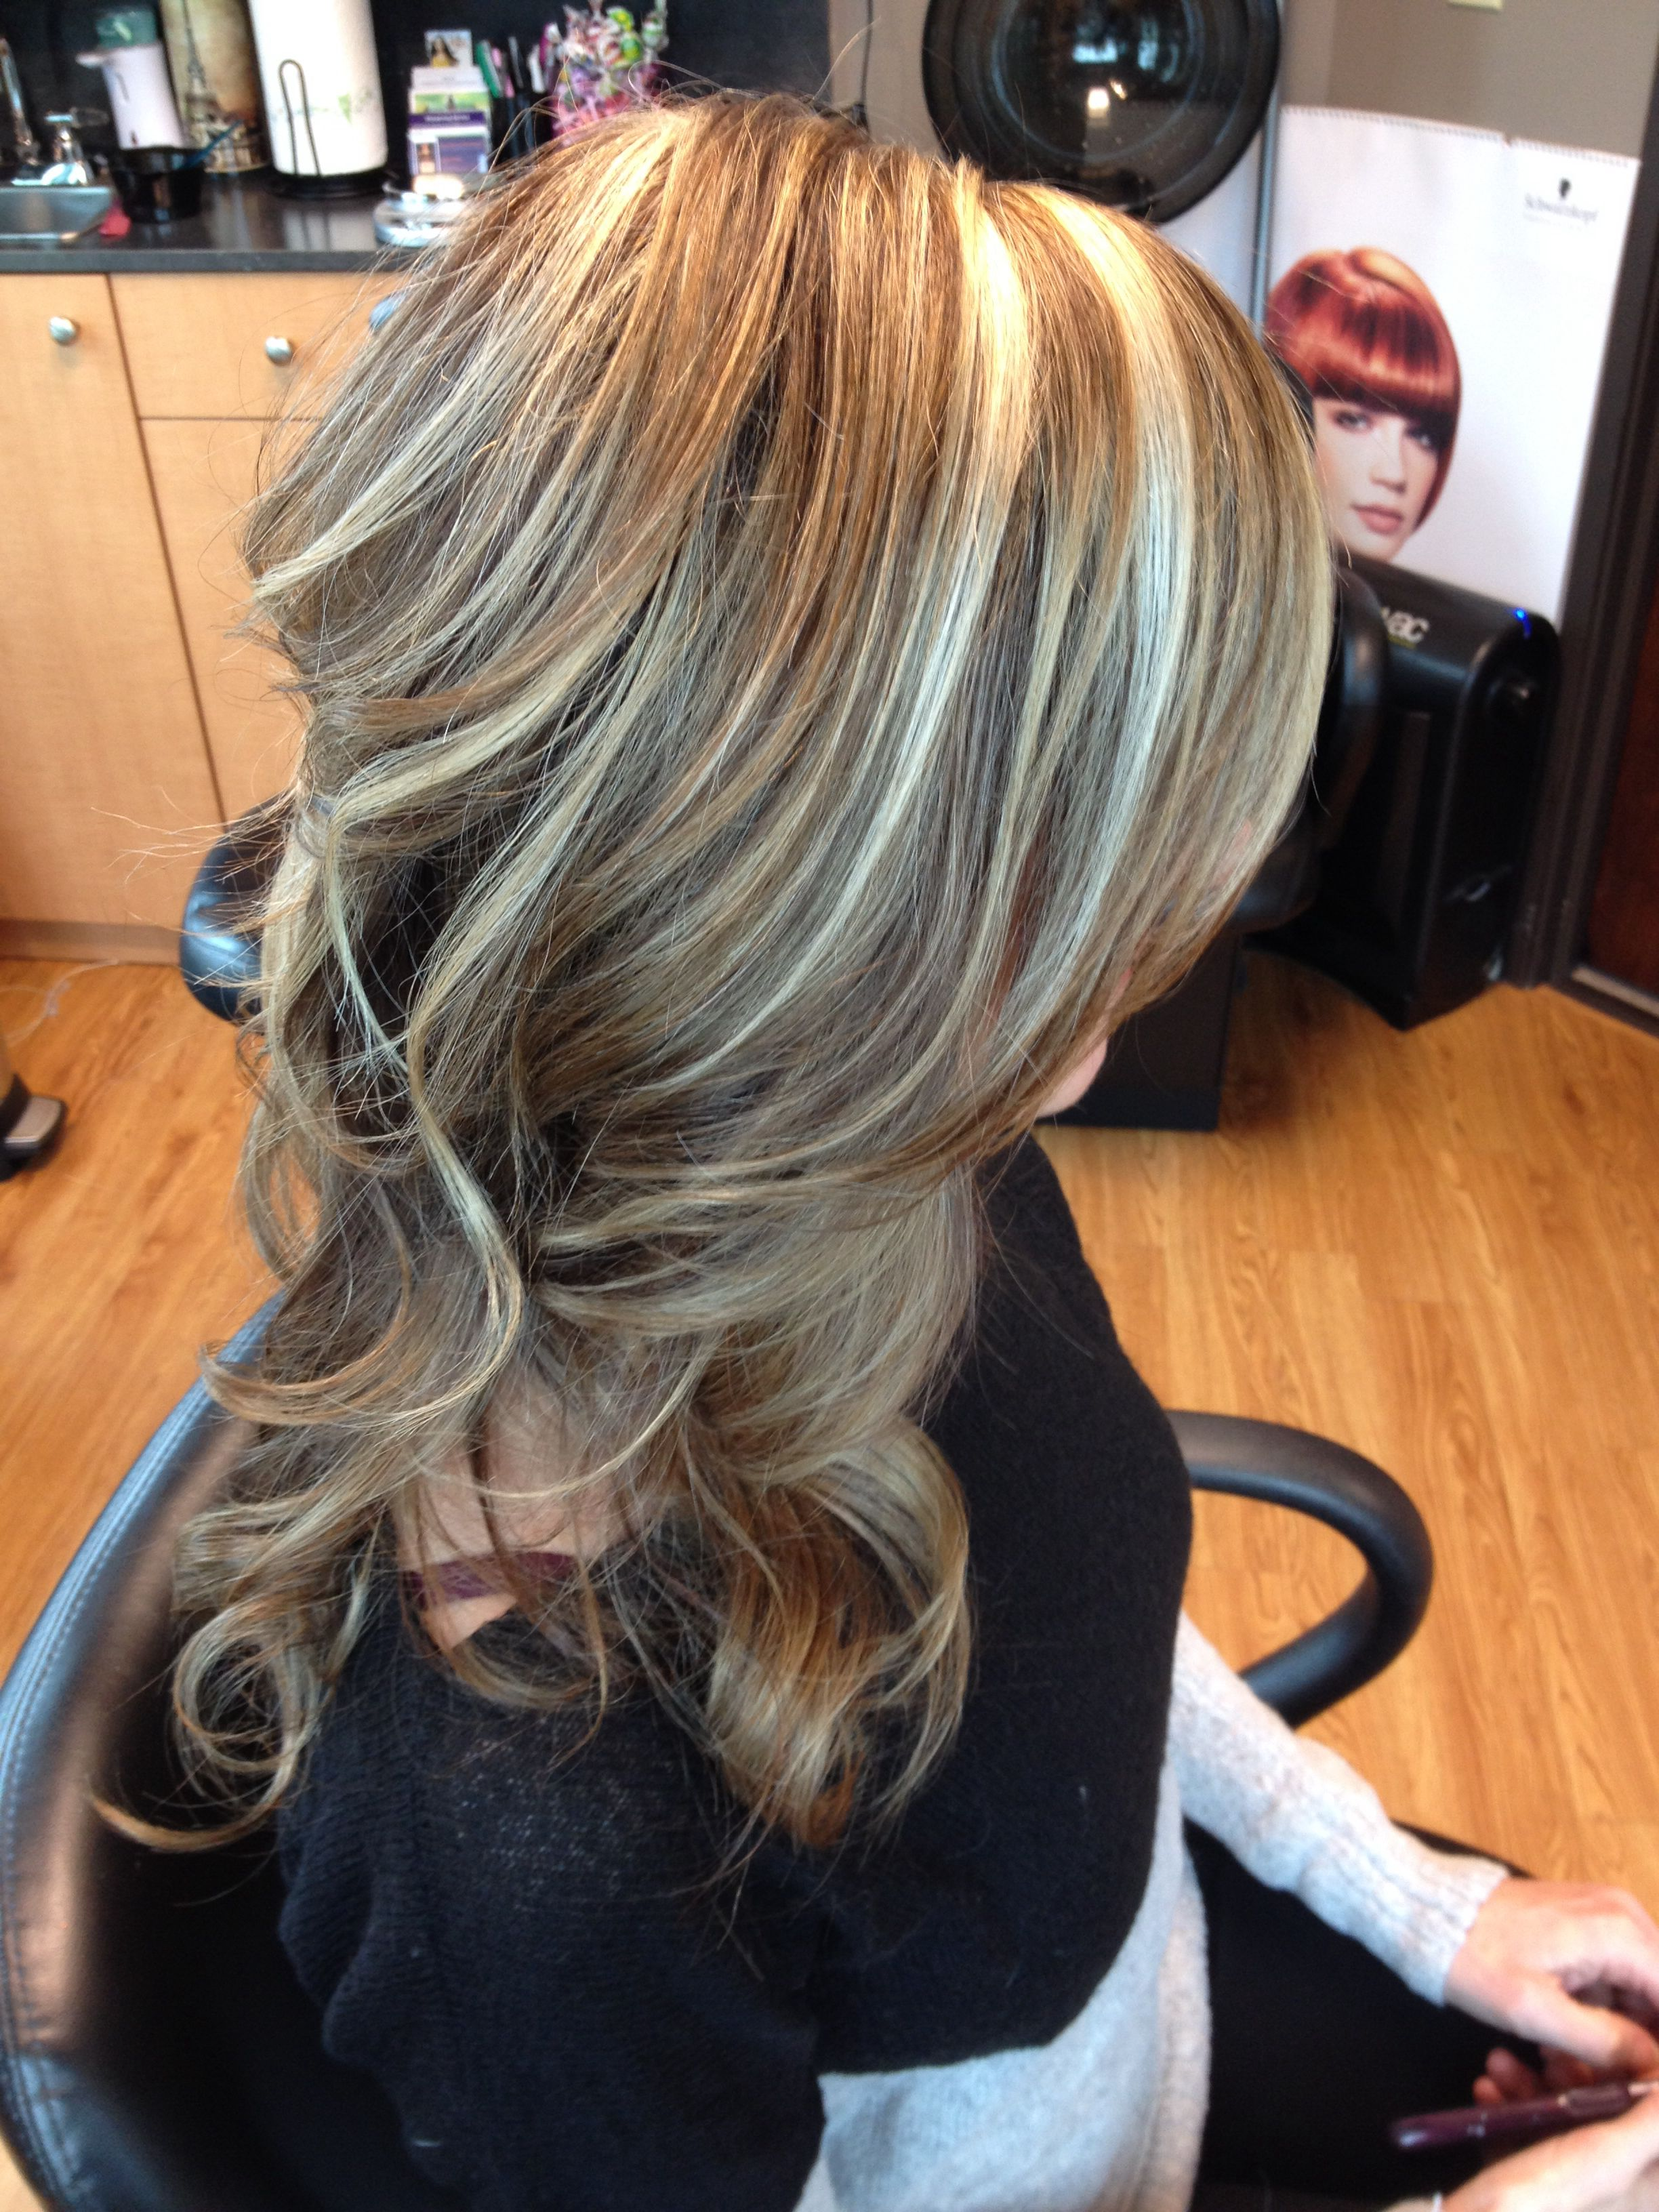 Light Brown Hair With Blonde Highlights And Curls Brown